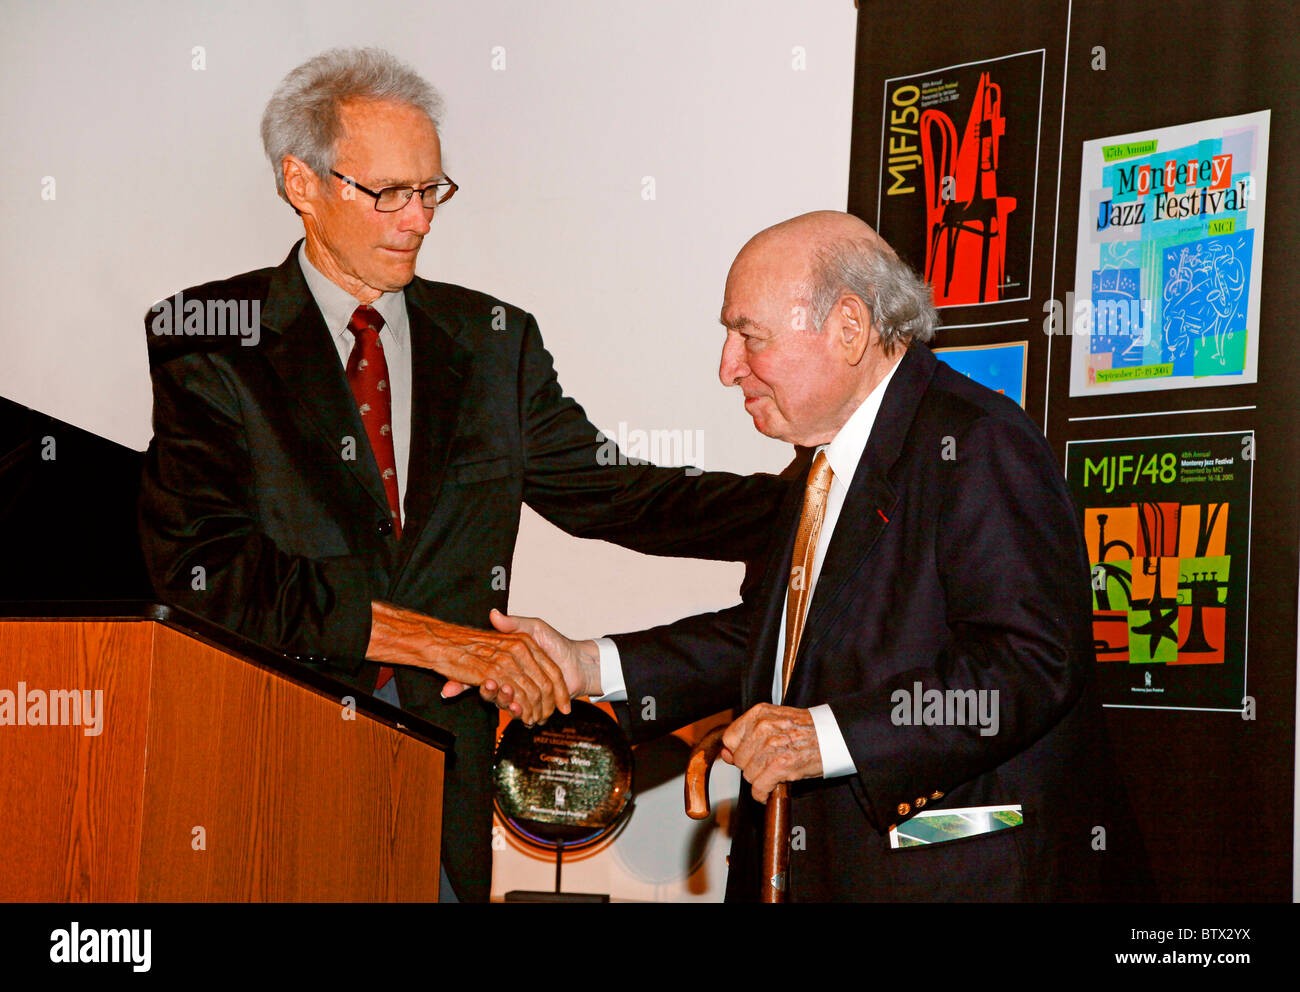 CLINT EASTWOOD presents GEORGE WEIN with an award at a Monterey Jazz Festival reception at the Mission Ranch CARMEL - Stock Image